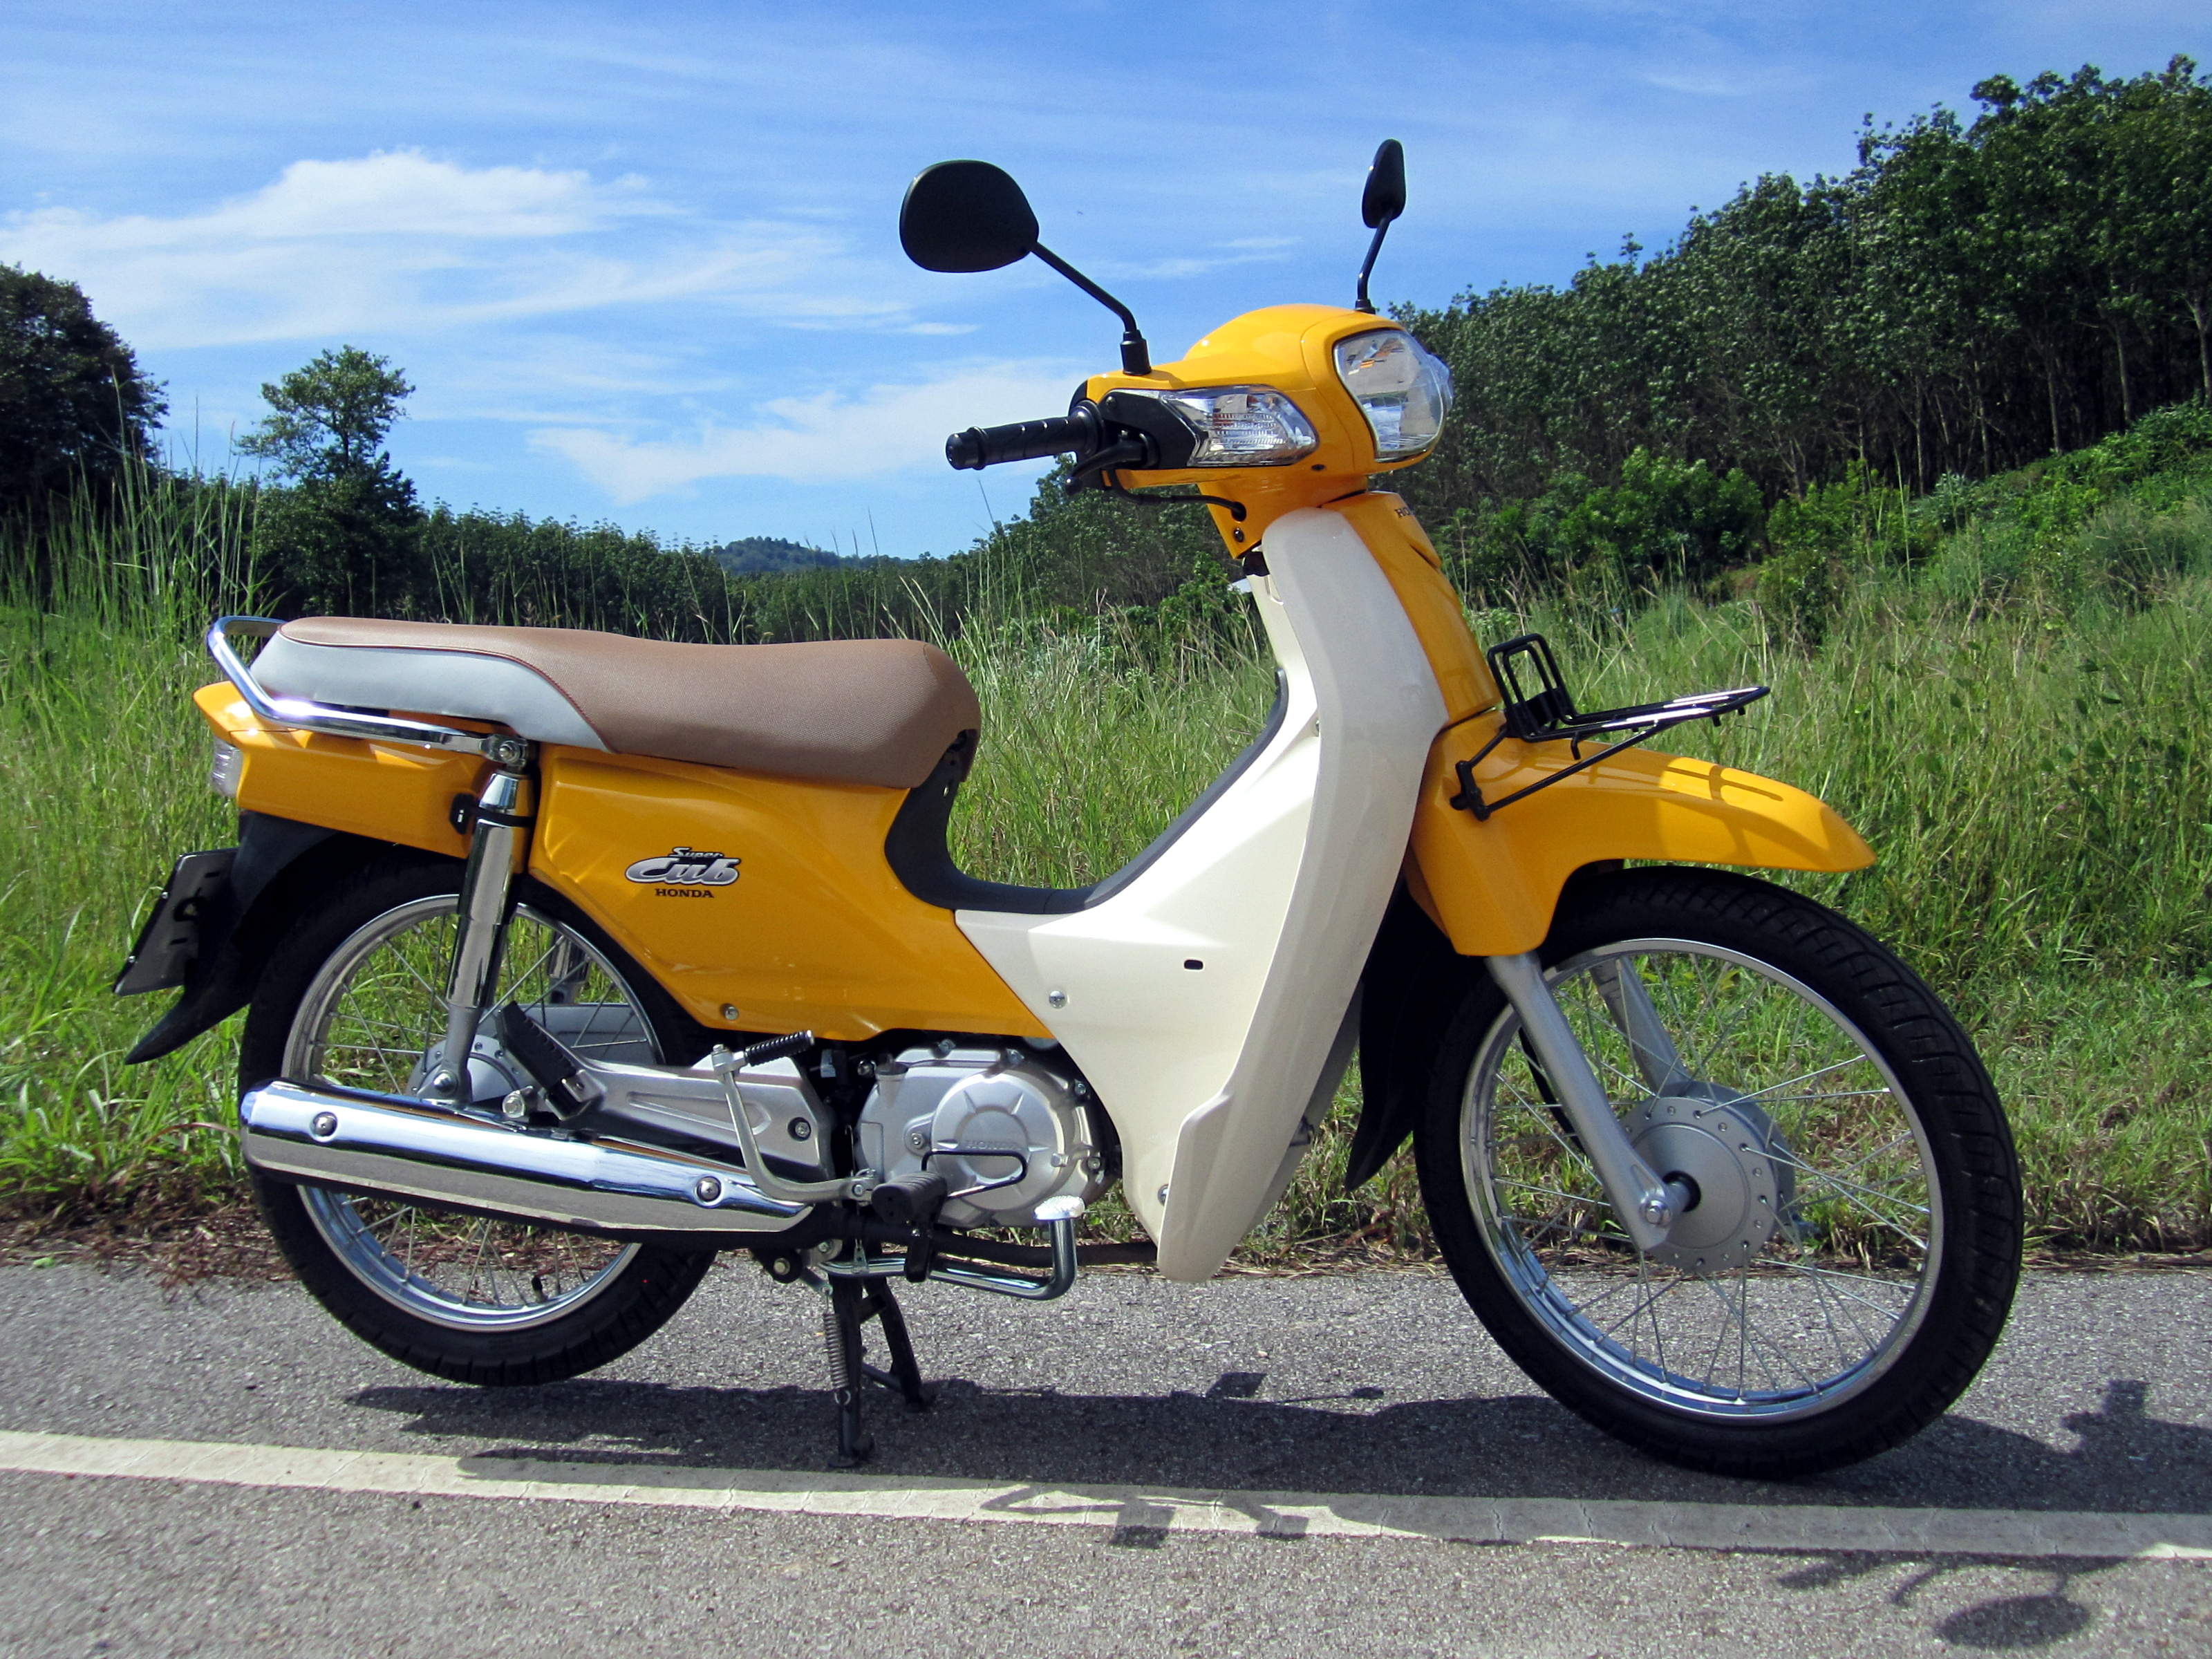 Honda Dream Excess Partsmoto Th 125 Specification 2011 Super Cub Wiring Diagram 110 Moto Zombdrive Com